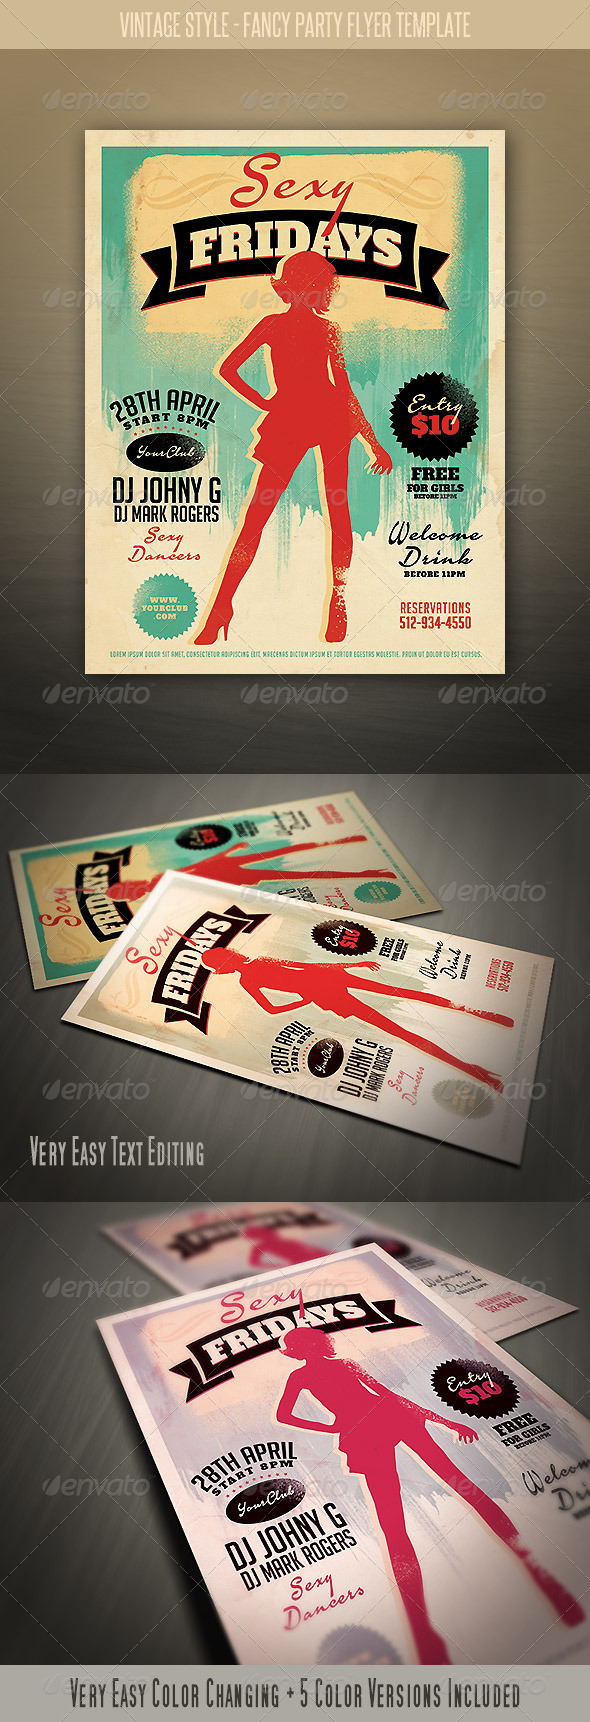 GraphicRiver Vintage Style Fancy Night Flyer 4113152